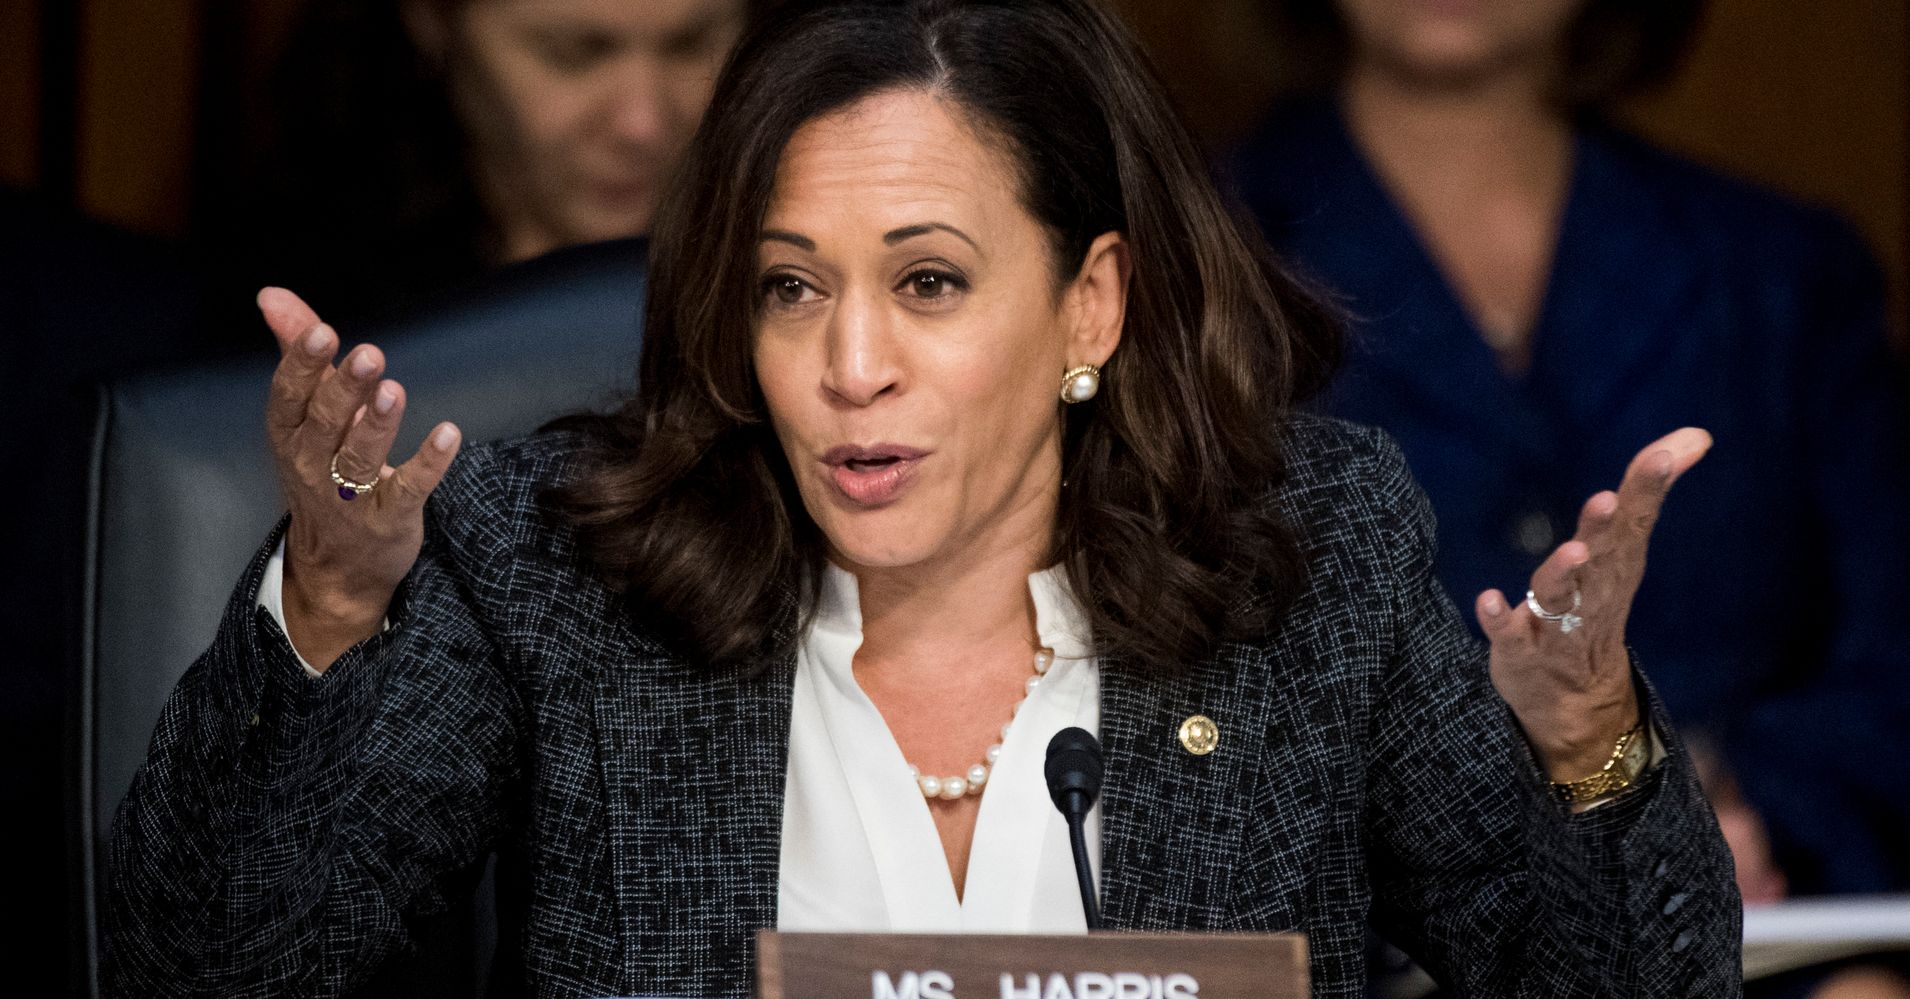 Kamala Harris: It's Not Hard To Spot The Wrong Side. They're The Ones With Torches And Swastikas